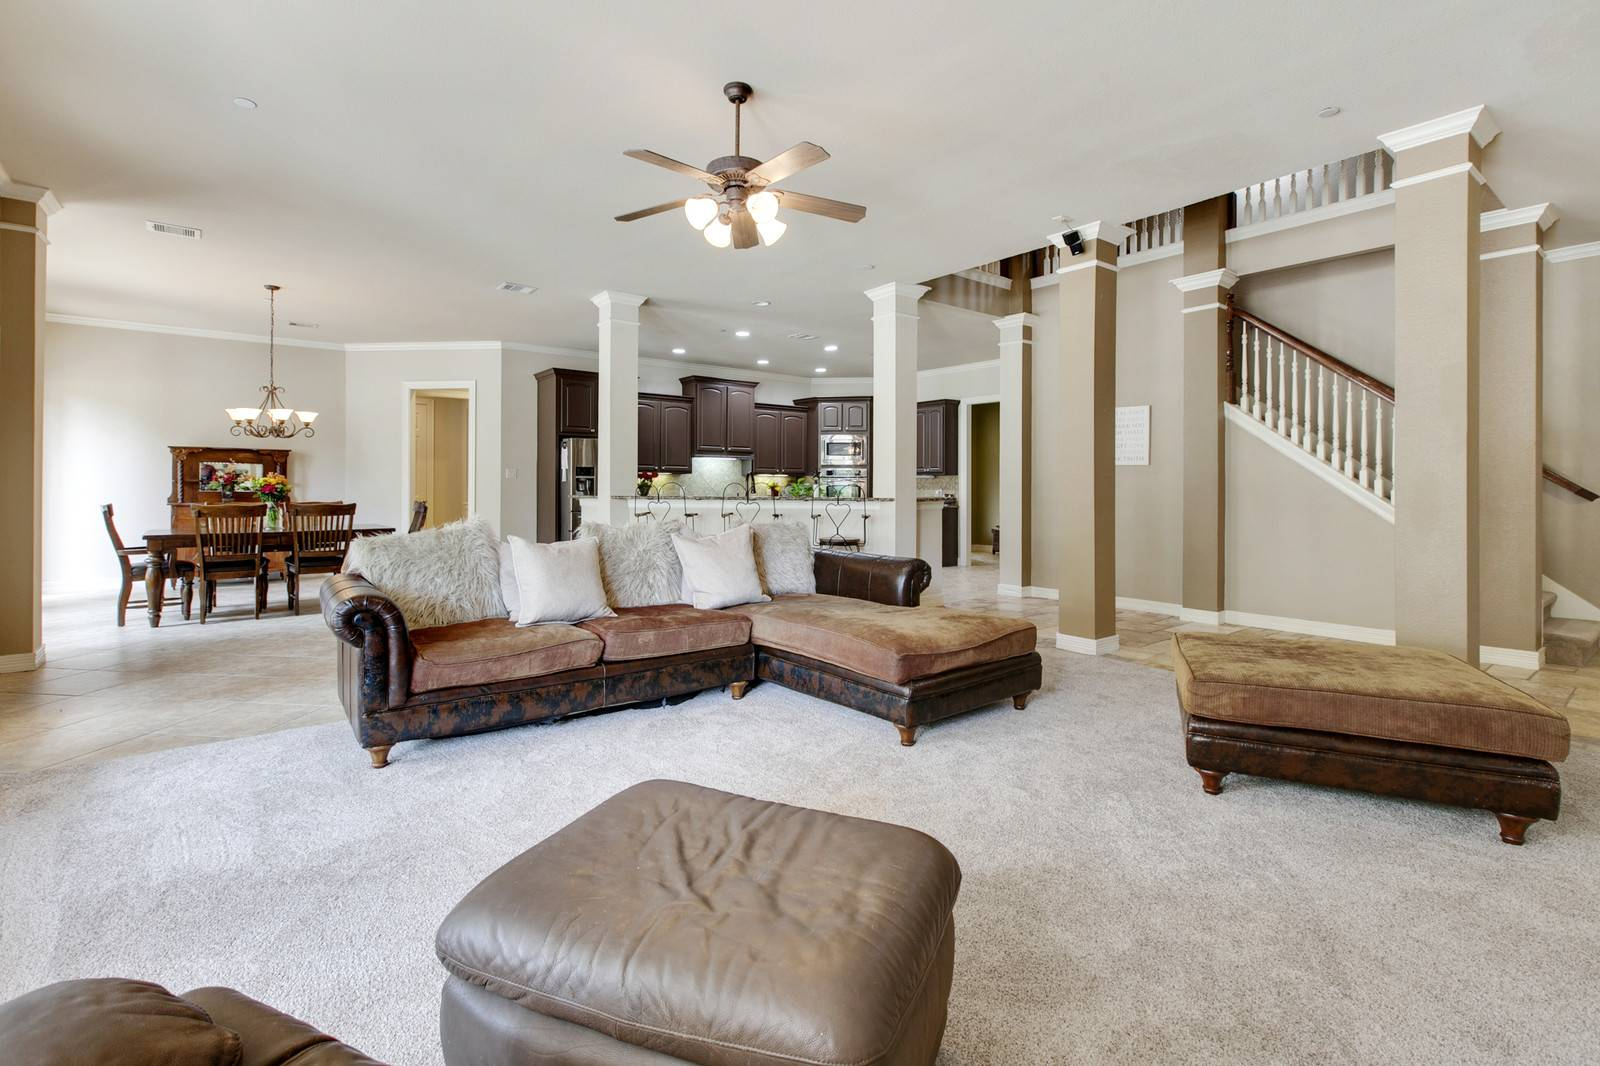 home on acreage for sale Leander TX